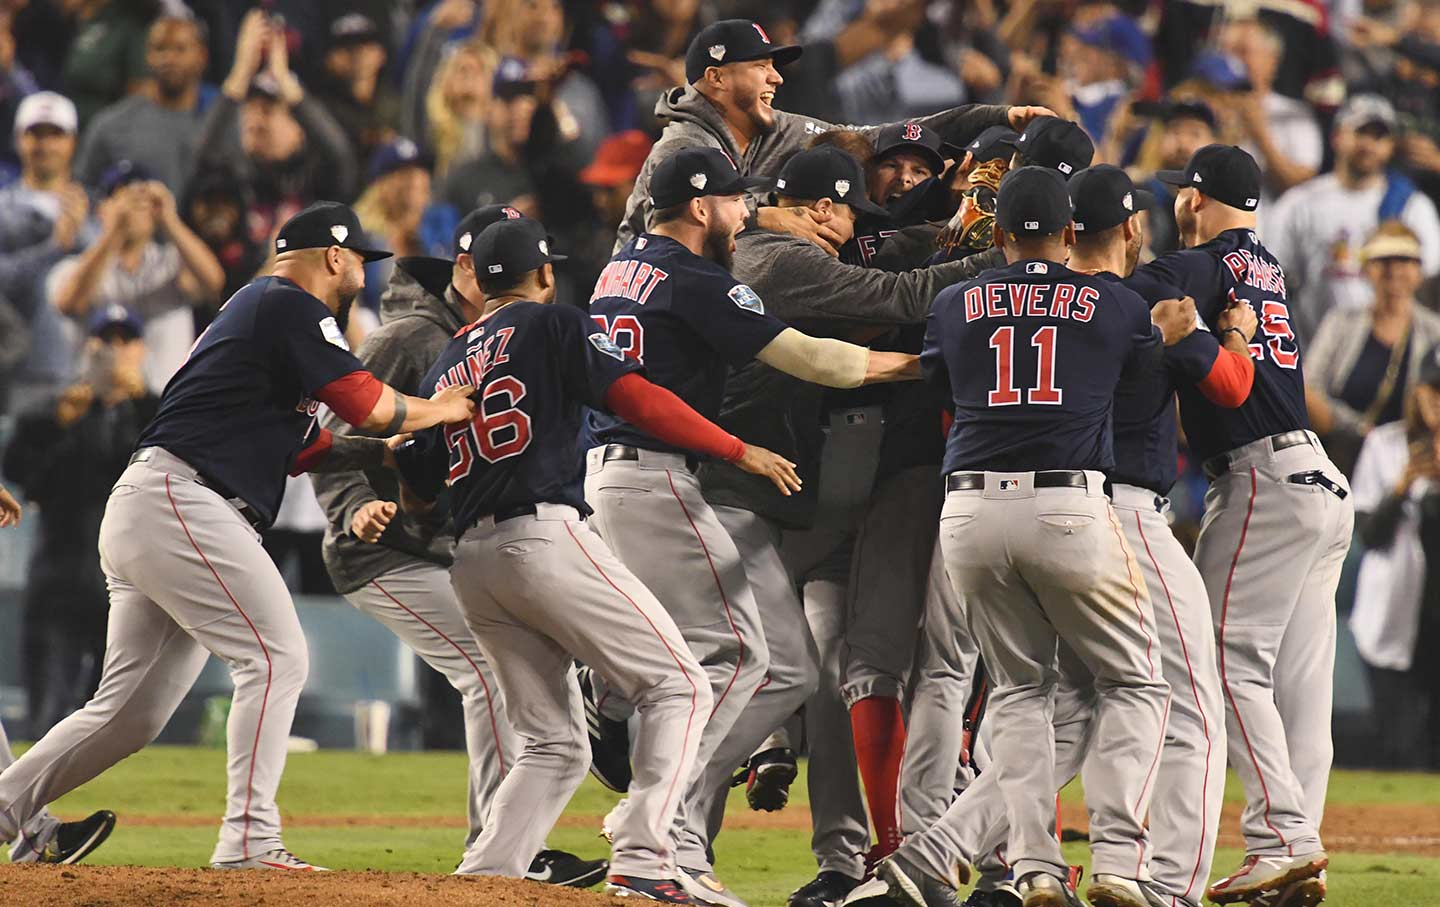 Red Sox: What potential disasters await in 2017?